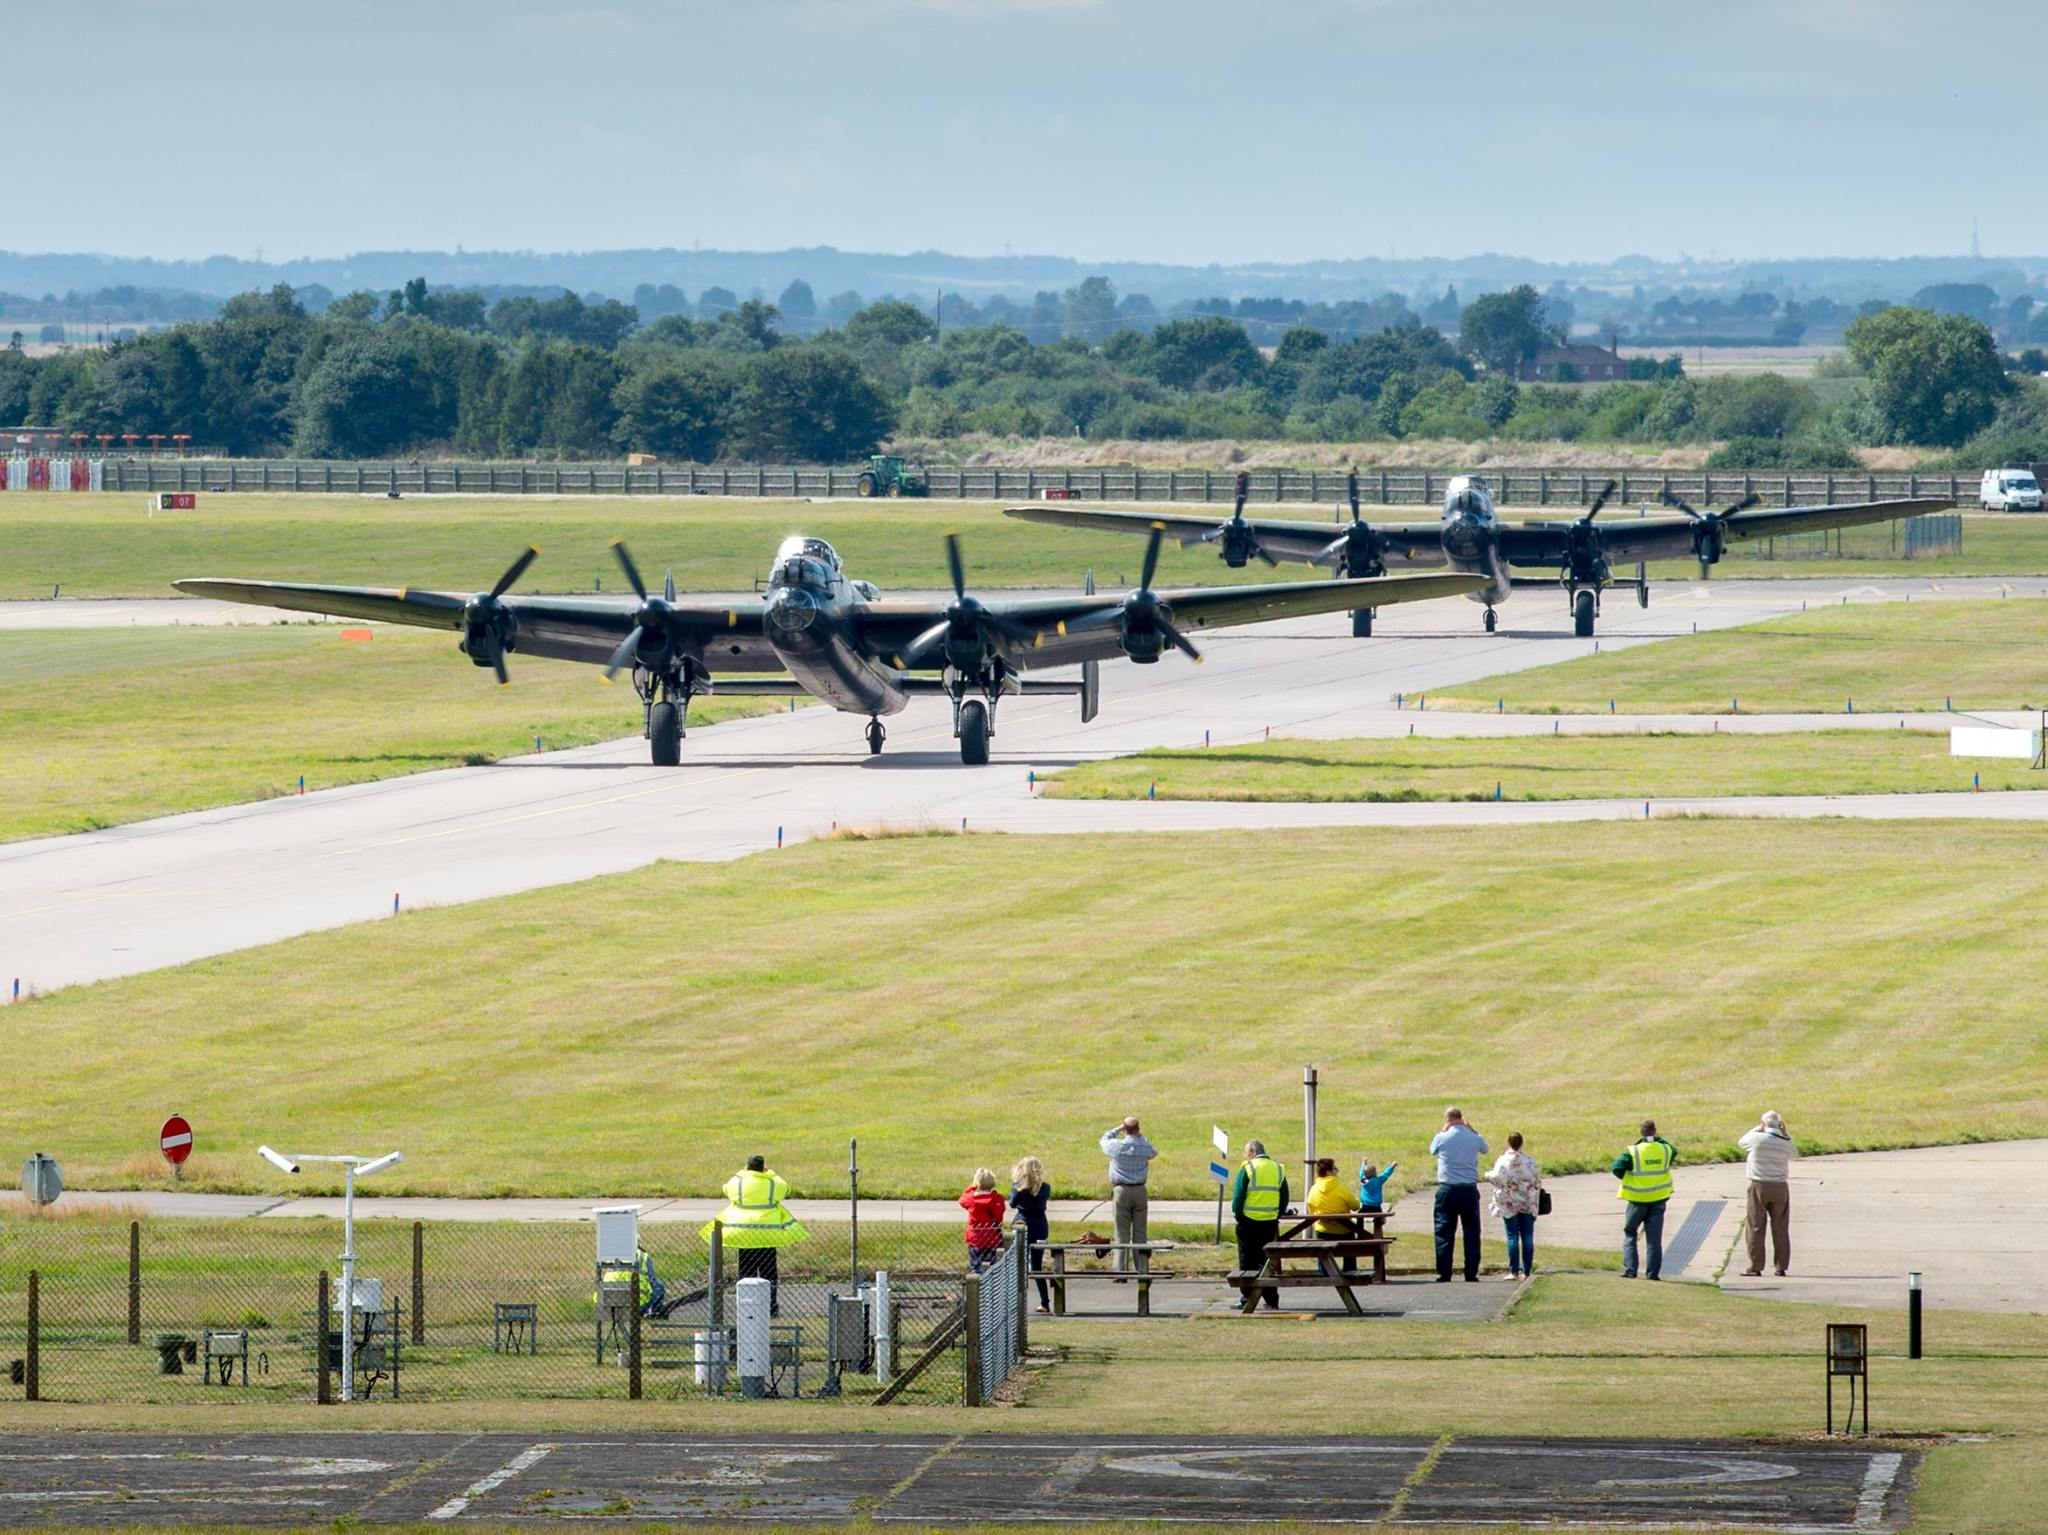 The Canadian and the British Lancaster bombers prepare to take flight at RAF Coningsby, United Kingdom. PHOTO: Gordon Elias, MoD Crown Copyright 2014